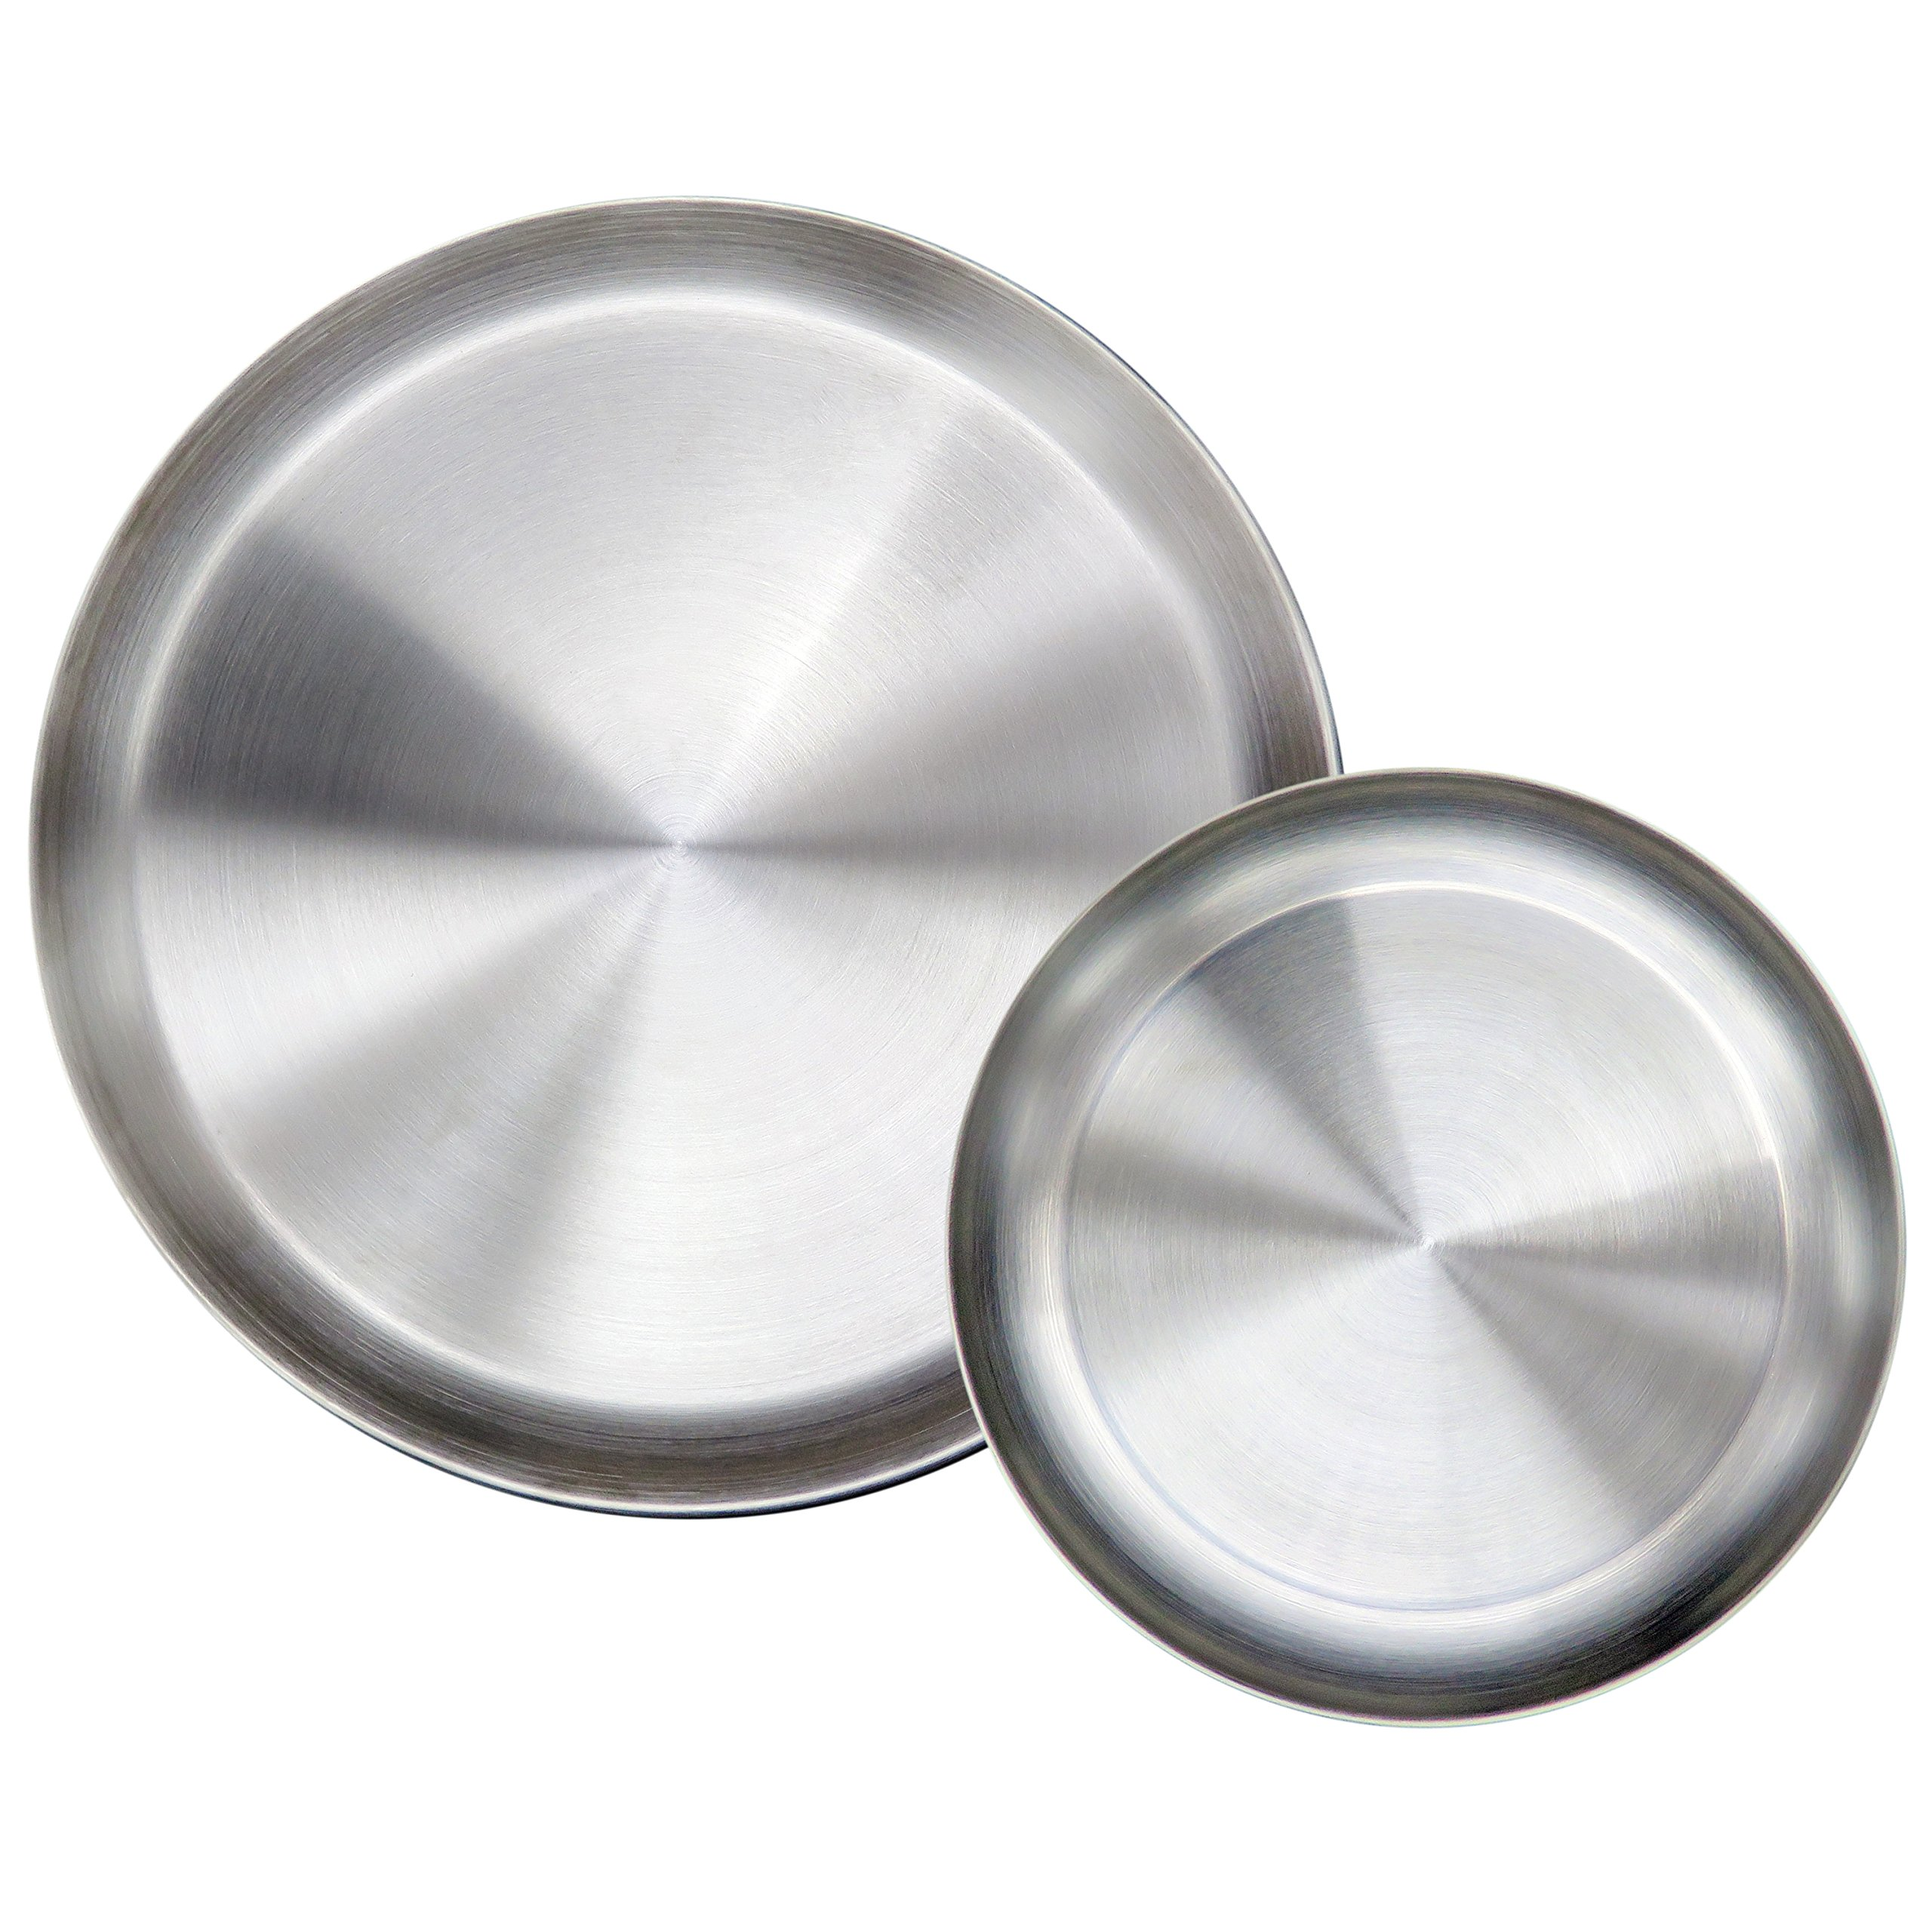 Immokaz Matte Polished 6.7 inch 304 Stainless Steel Round Plates Dish Set, for Dinner Plate, Camping Outdoor Plate, BPA Free, Pack of 2 (S)